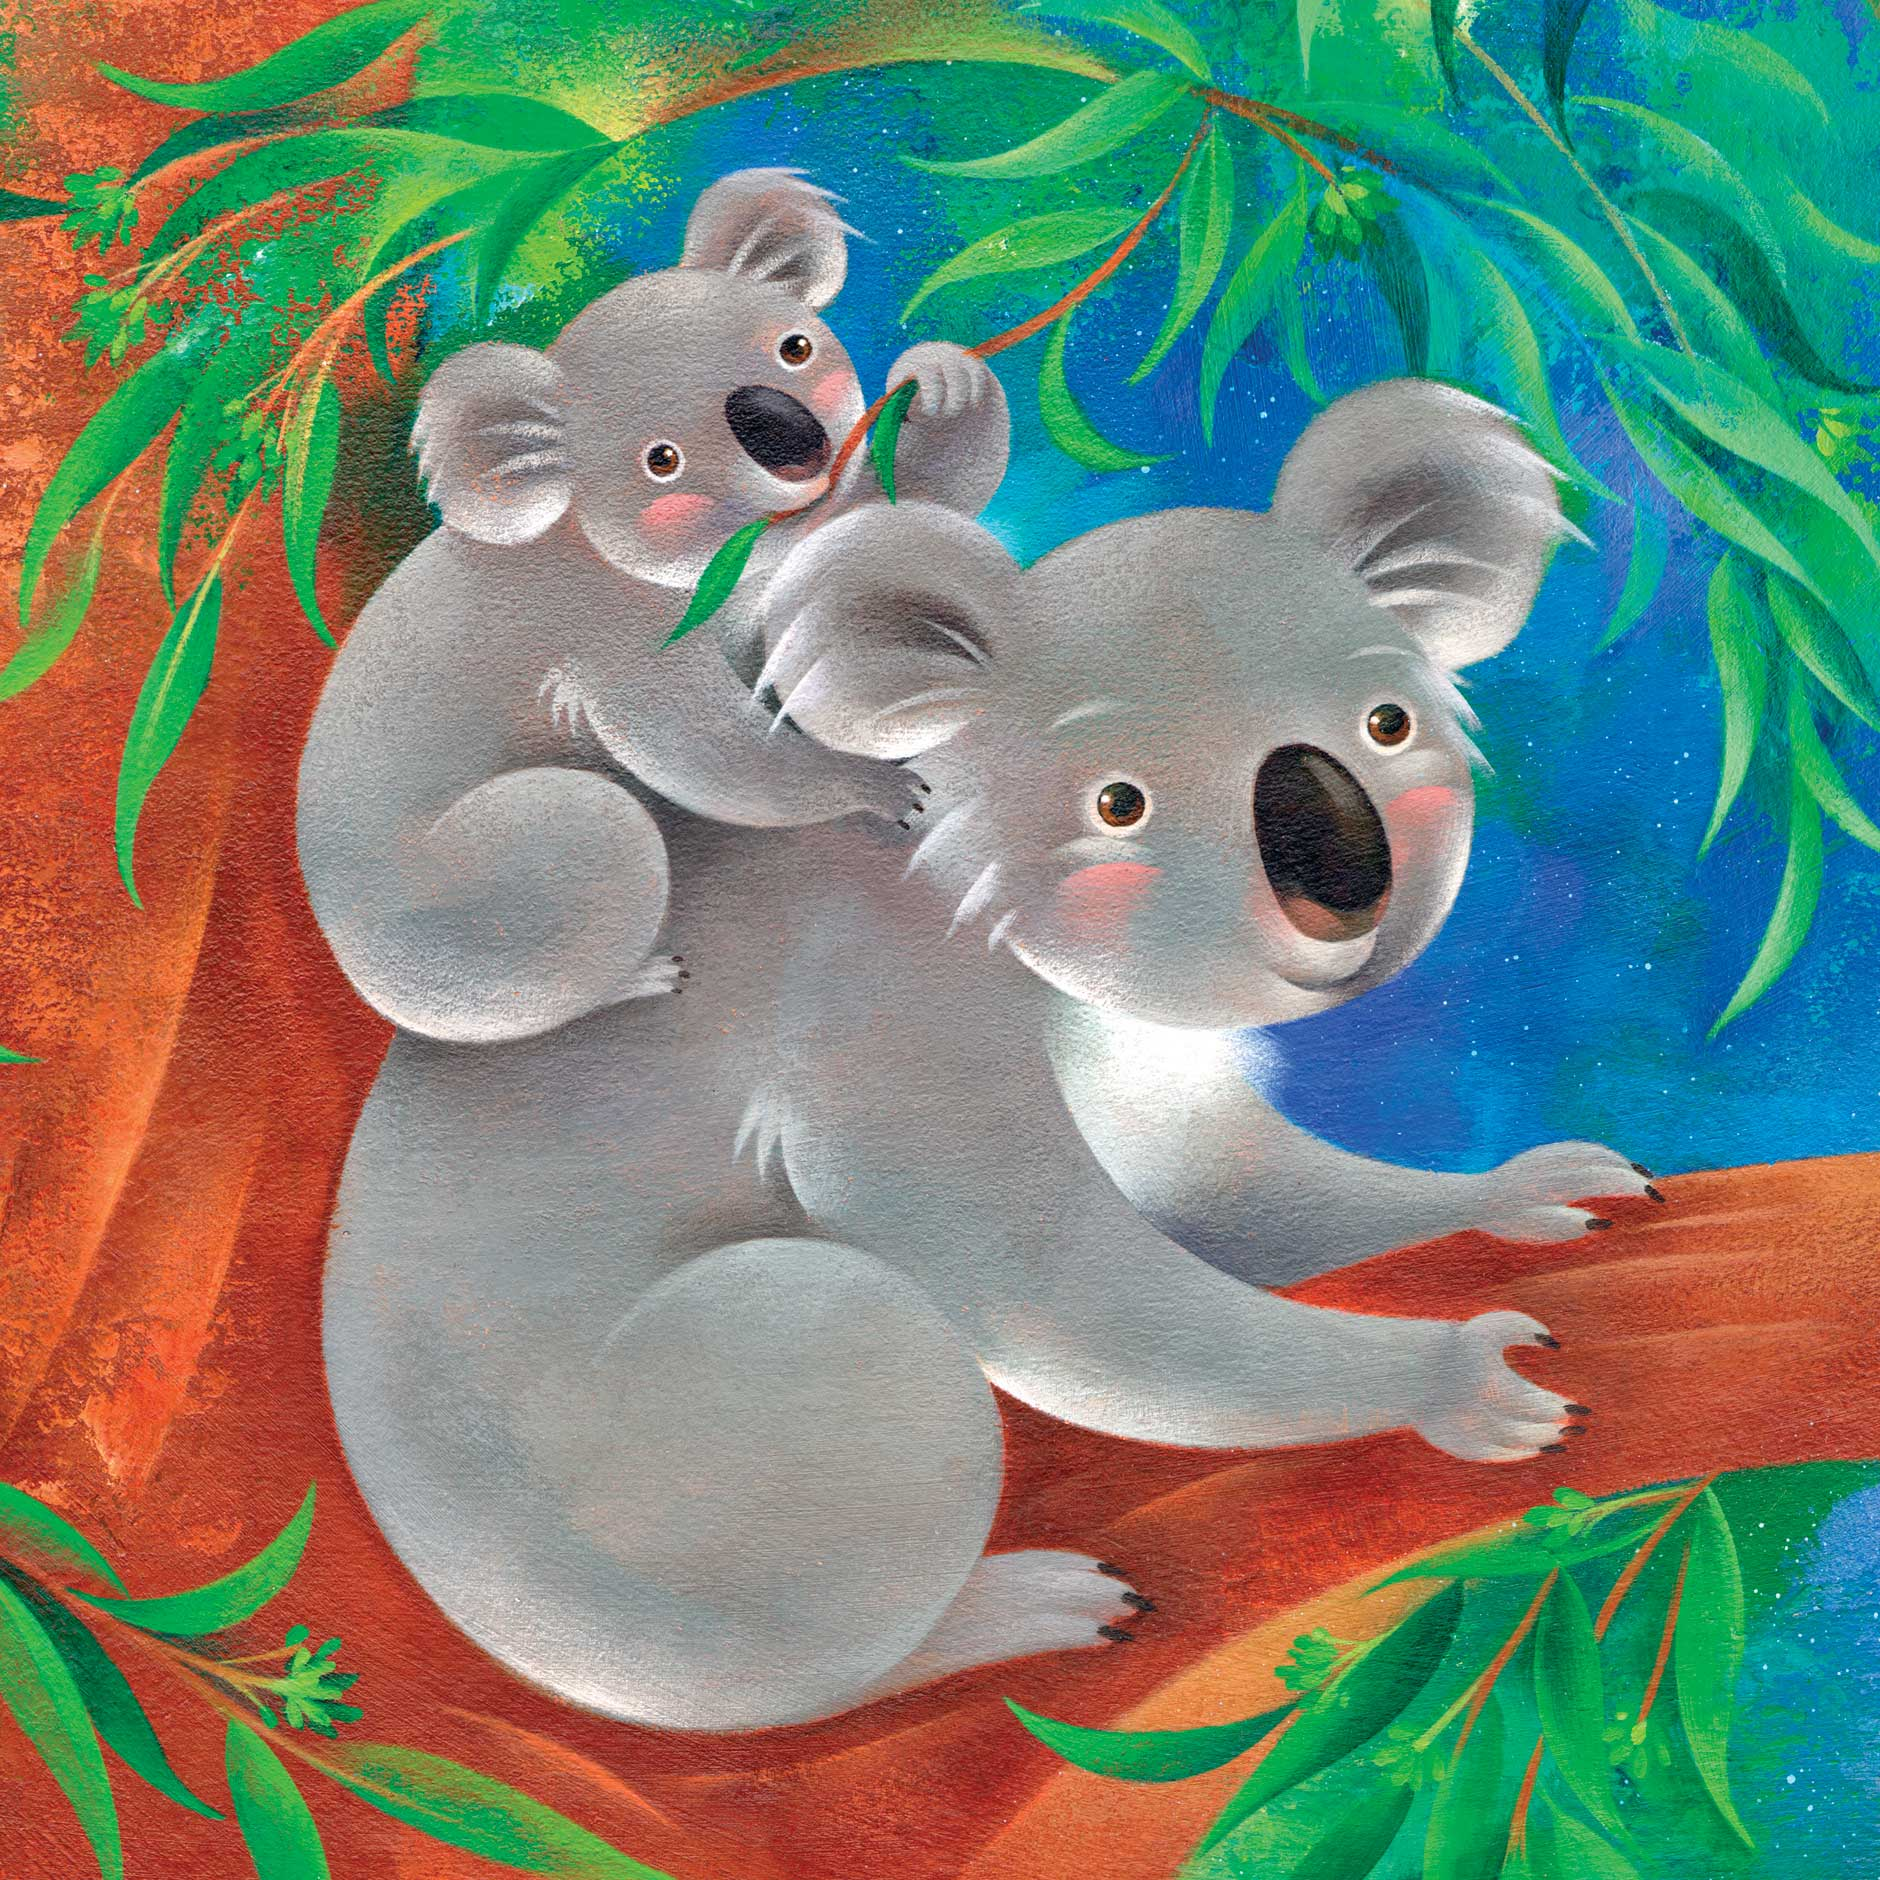 Jui Ishida Illustration Sleepy Koala bears